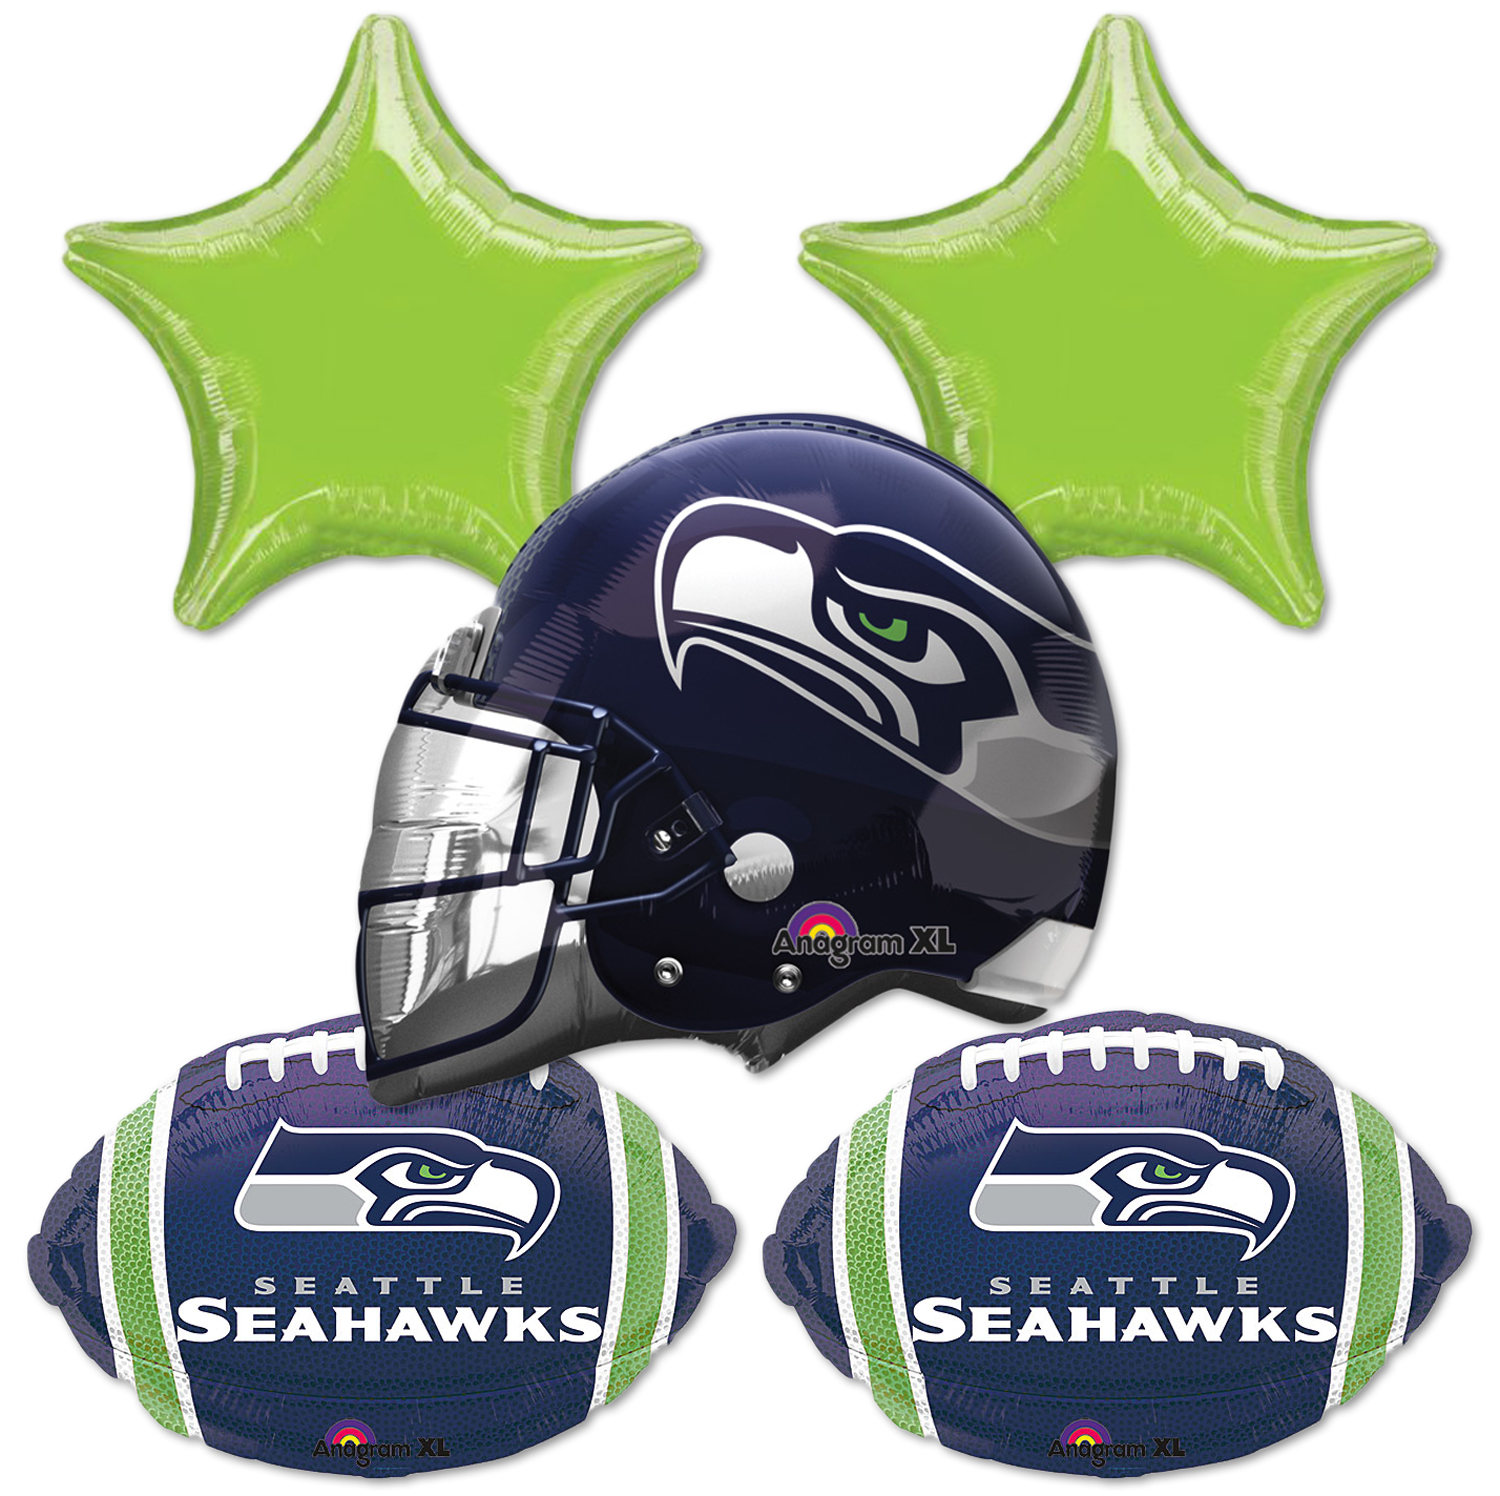 Anagram NFL Seattle Seahawks Football Bouquet 5pc Balloon Pack, Blue Green White